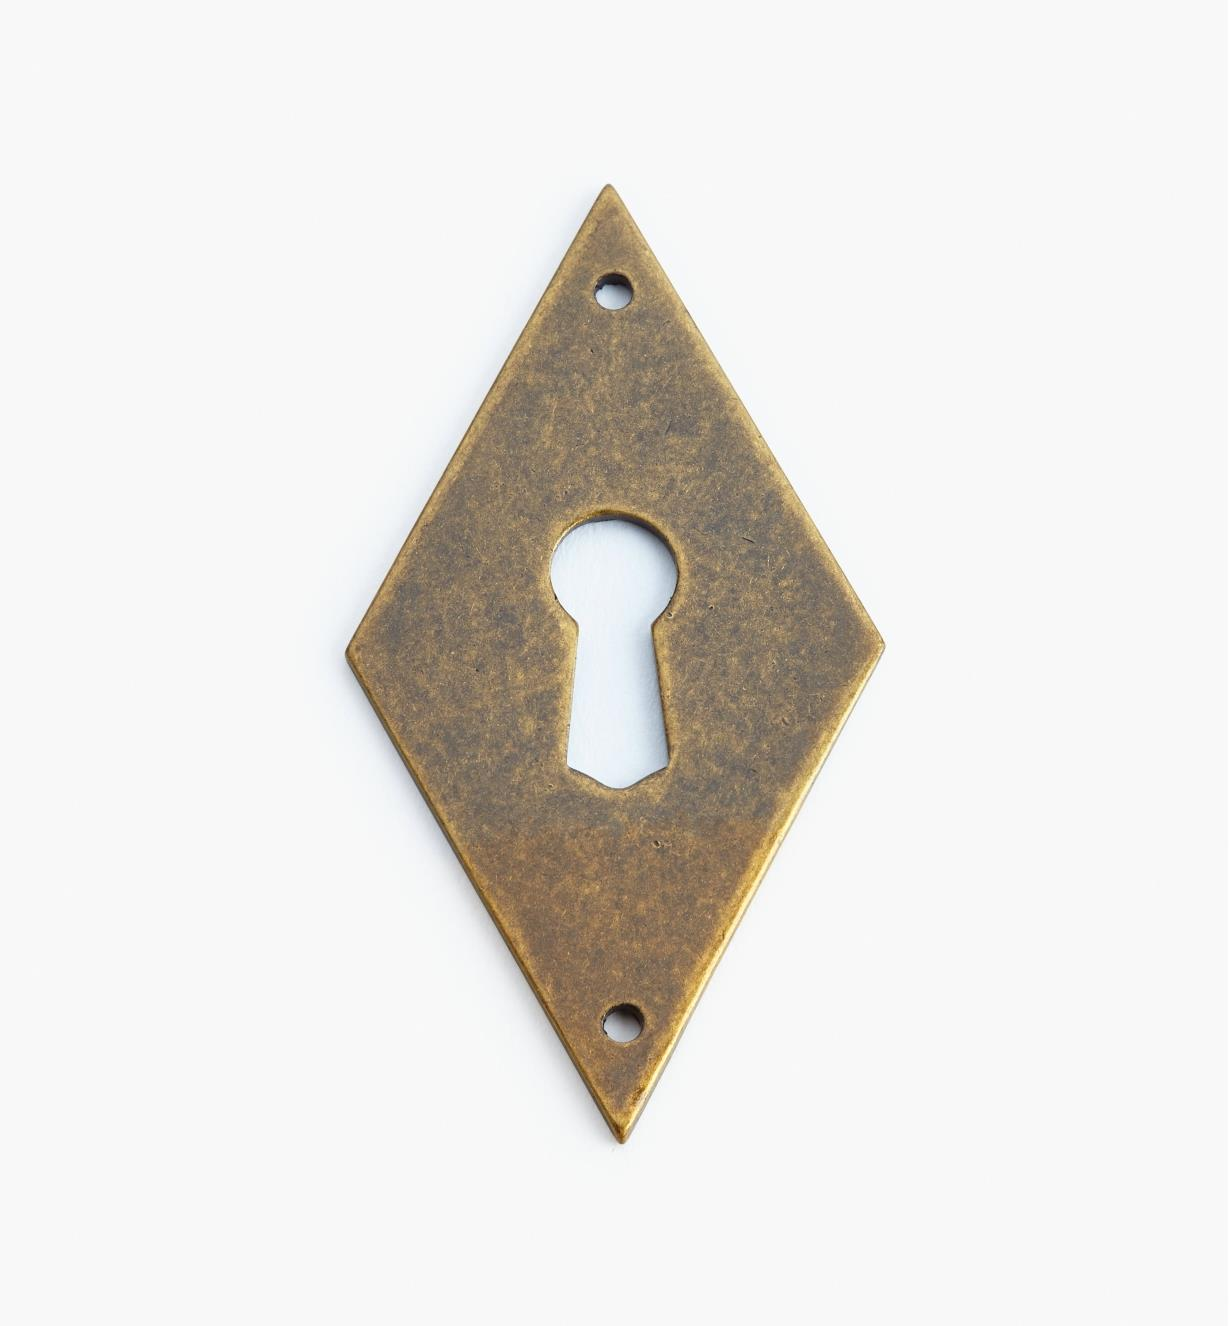 01A1960 - Lg. Vert. Antique Brass Diamond Esc.